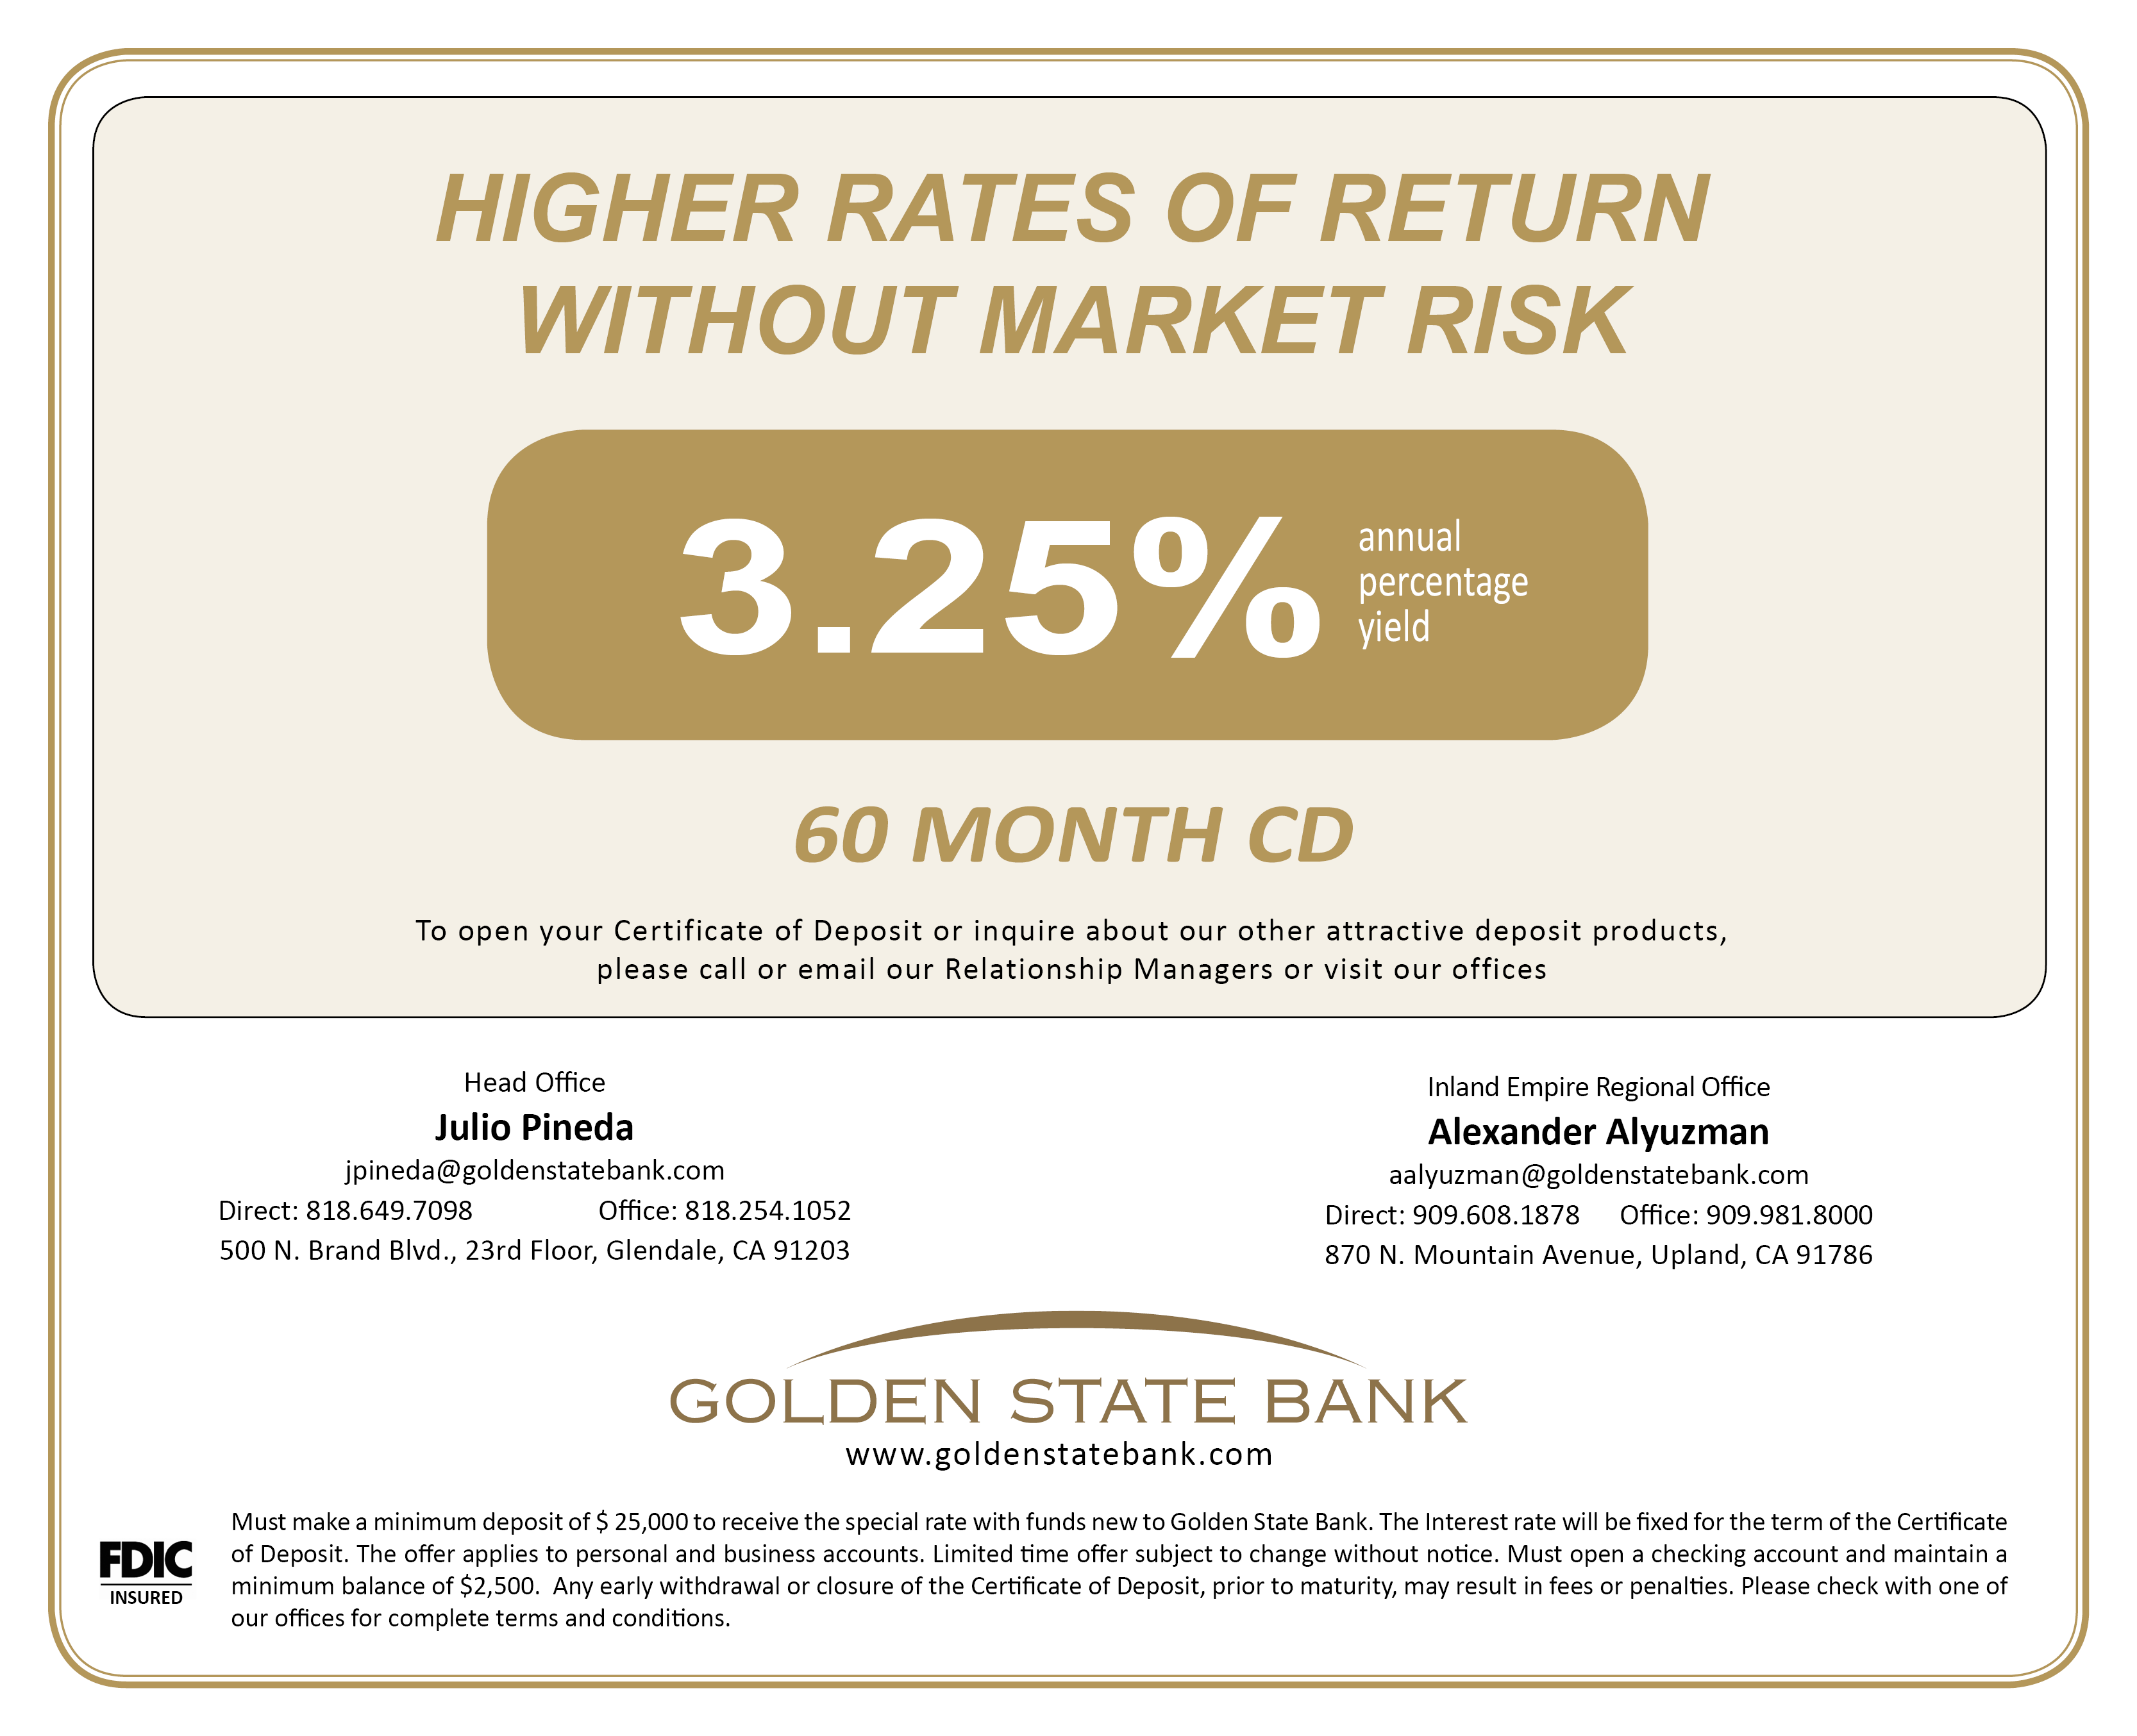 Higher Rate 60 Month Cd At 325 Annual Percentage Yield